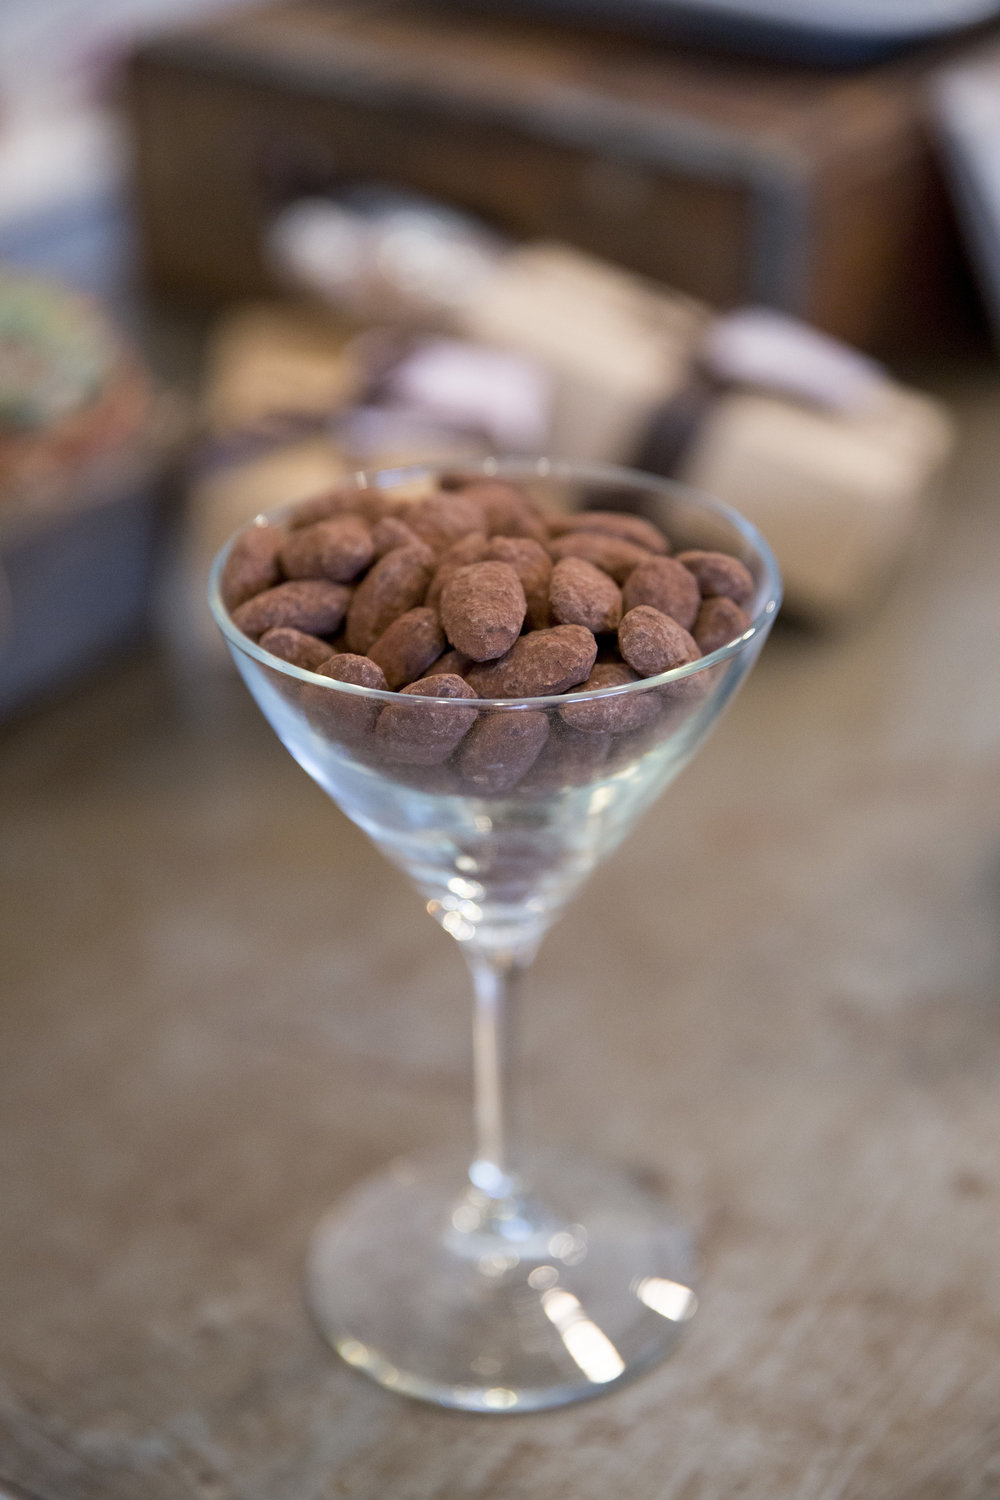 www.santabarbarawedding | Jessica Foster Confections | Dessert Bar | Chocolate Almonds | Kristen Beinke Photography